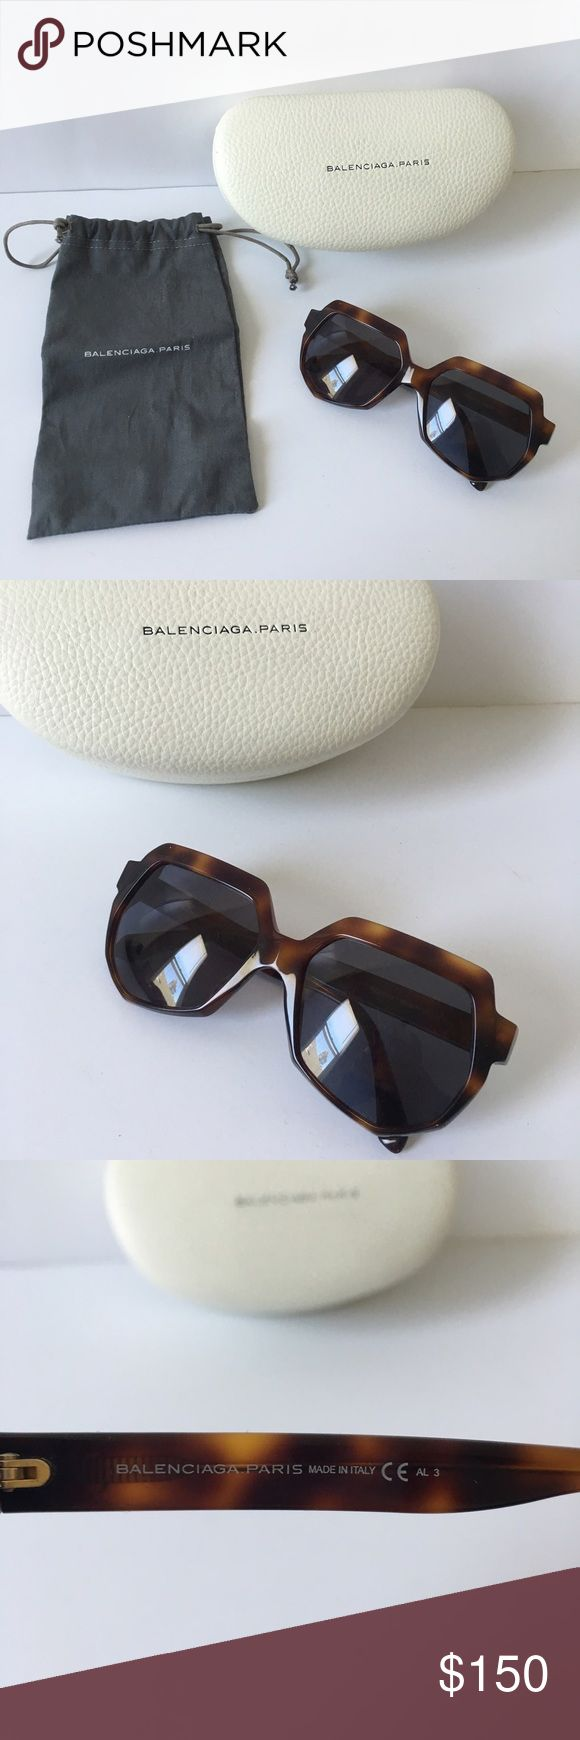 Beautiful Balenciaga sunglasses with case Brand new Balenciaga sunglasses and case. The glasses are perfect condition but there are some minor blemishes on the case.     🚫 no trades  ✅ Offers using offer tool ✅ Balenciaga Accessories Sunglasses